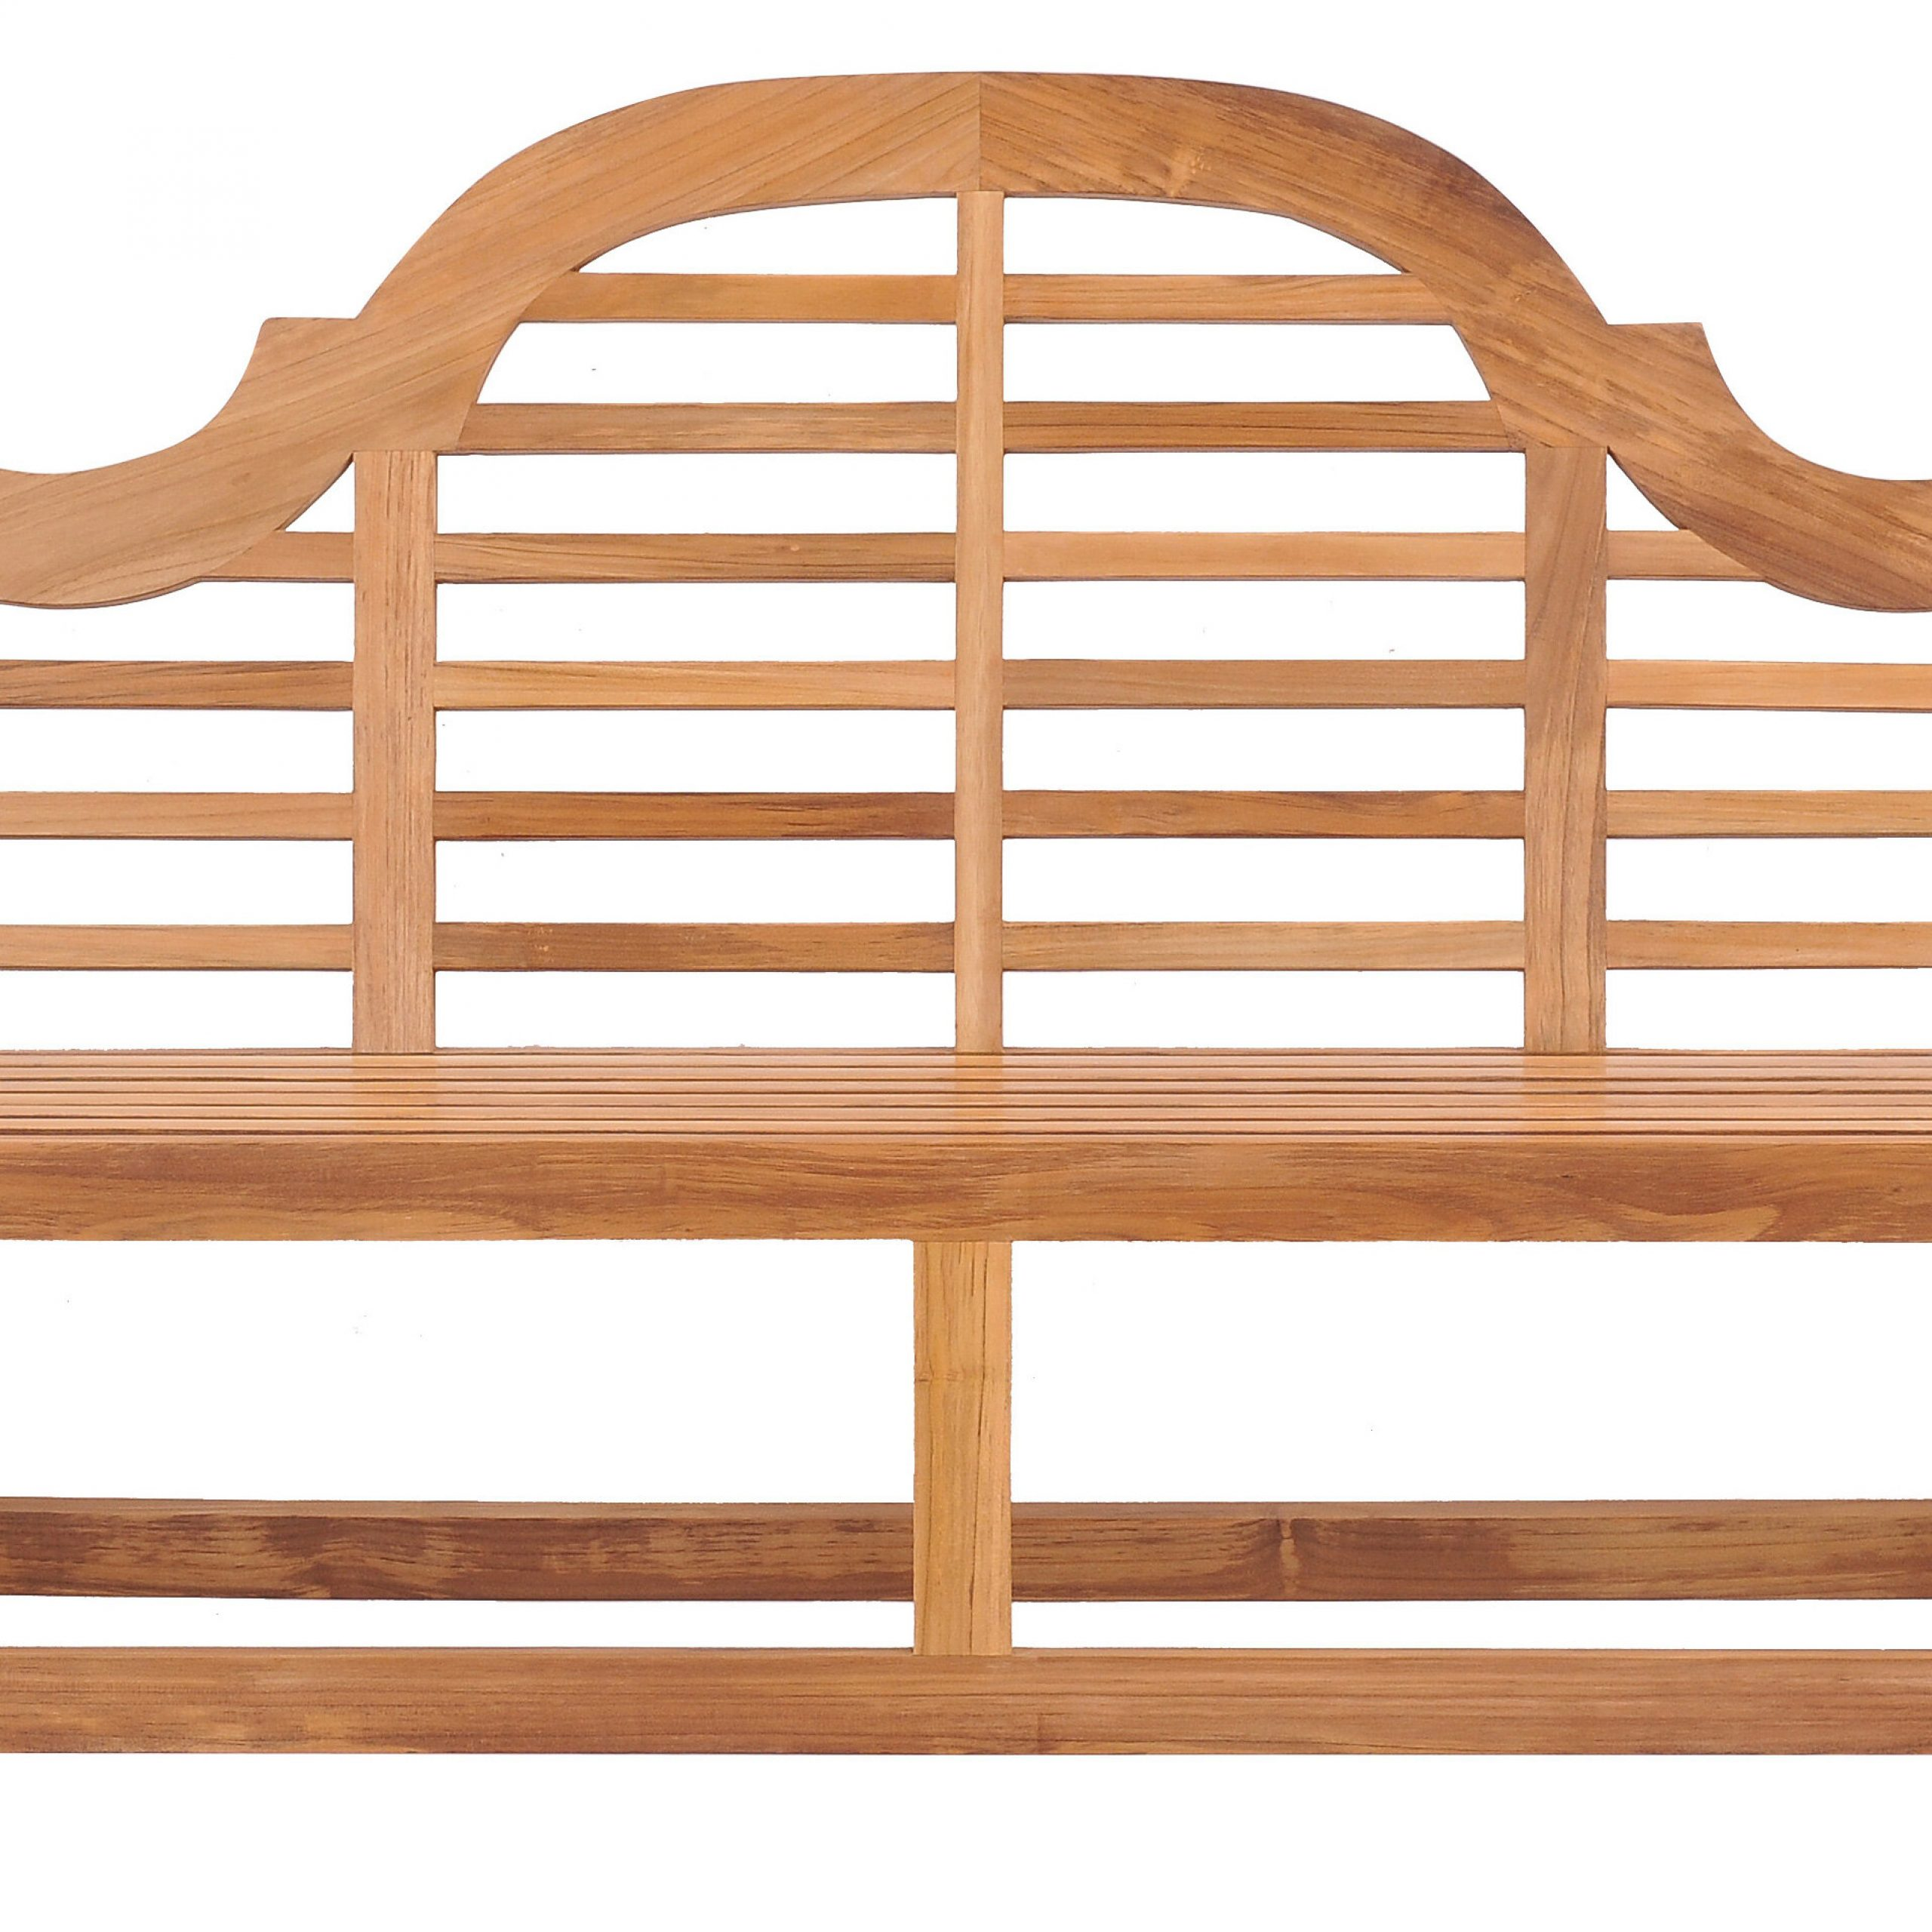 Passarelli Teak Garden Bench With Regard To Wallie Teak Garden Benches (View 15 of 25)